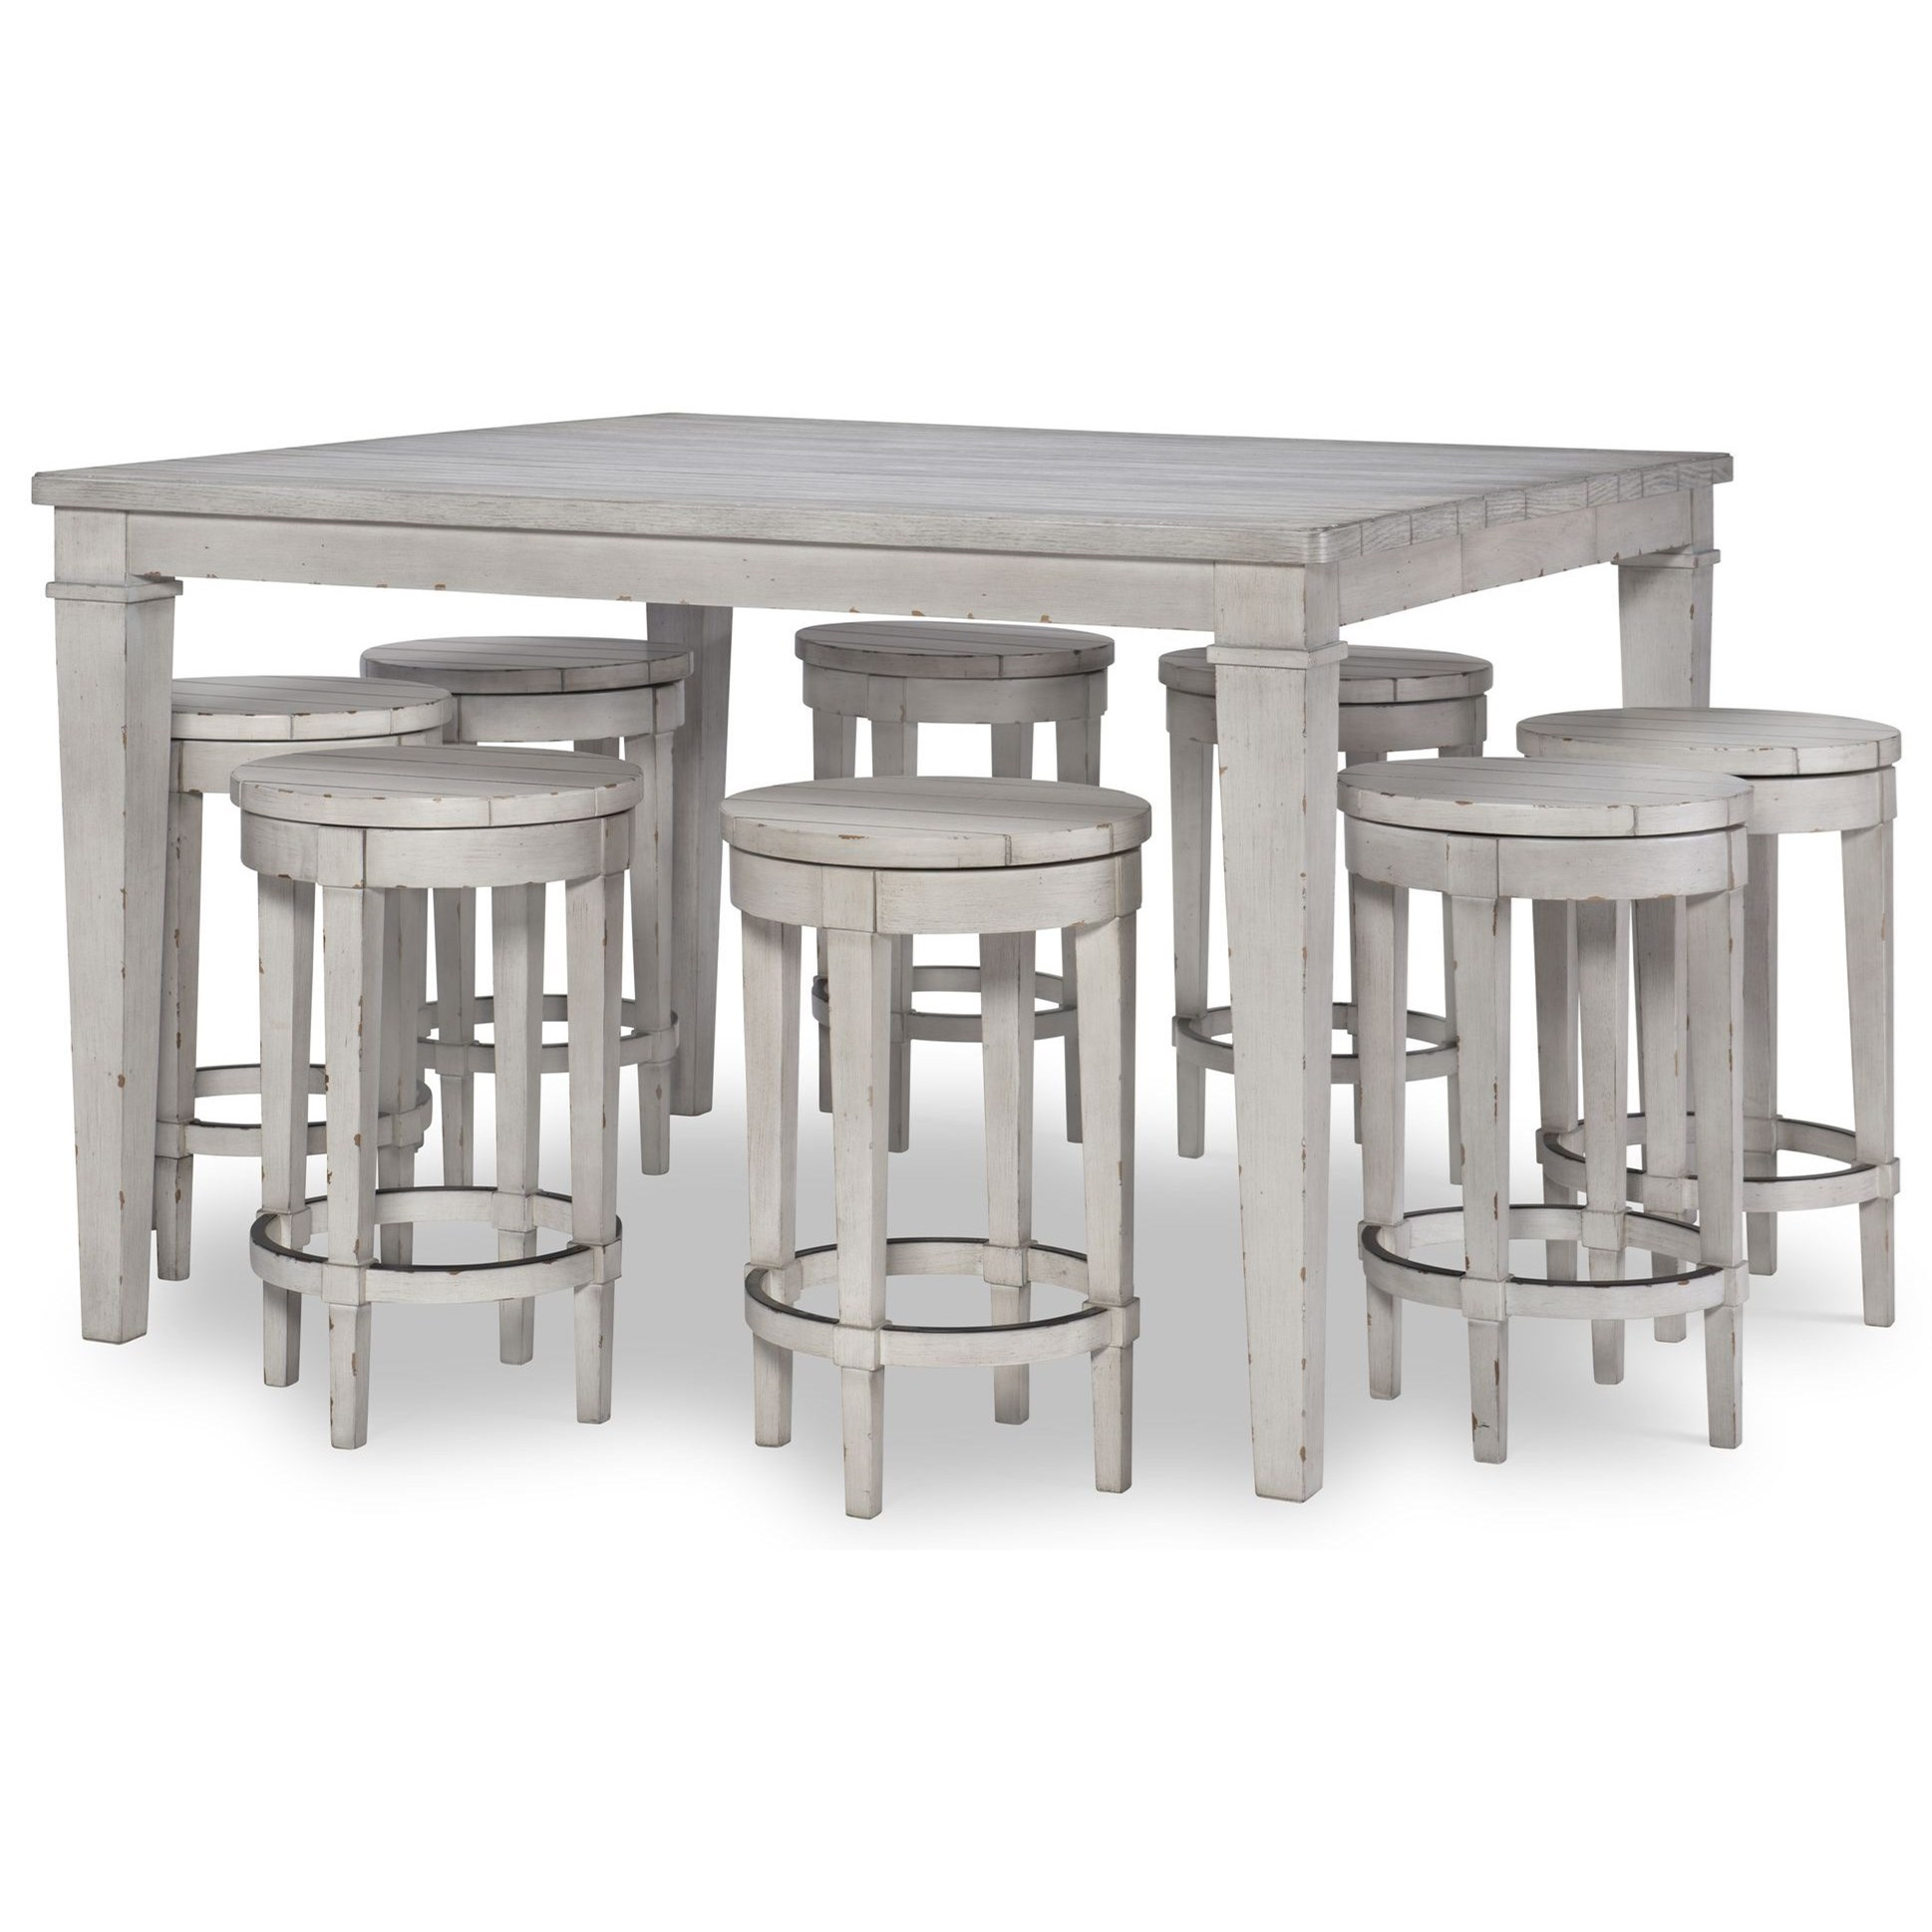 Belhaven 9-Piece Pub Table and Chair Set by Legacy Classic at Stoney Creek Furniture